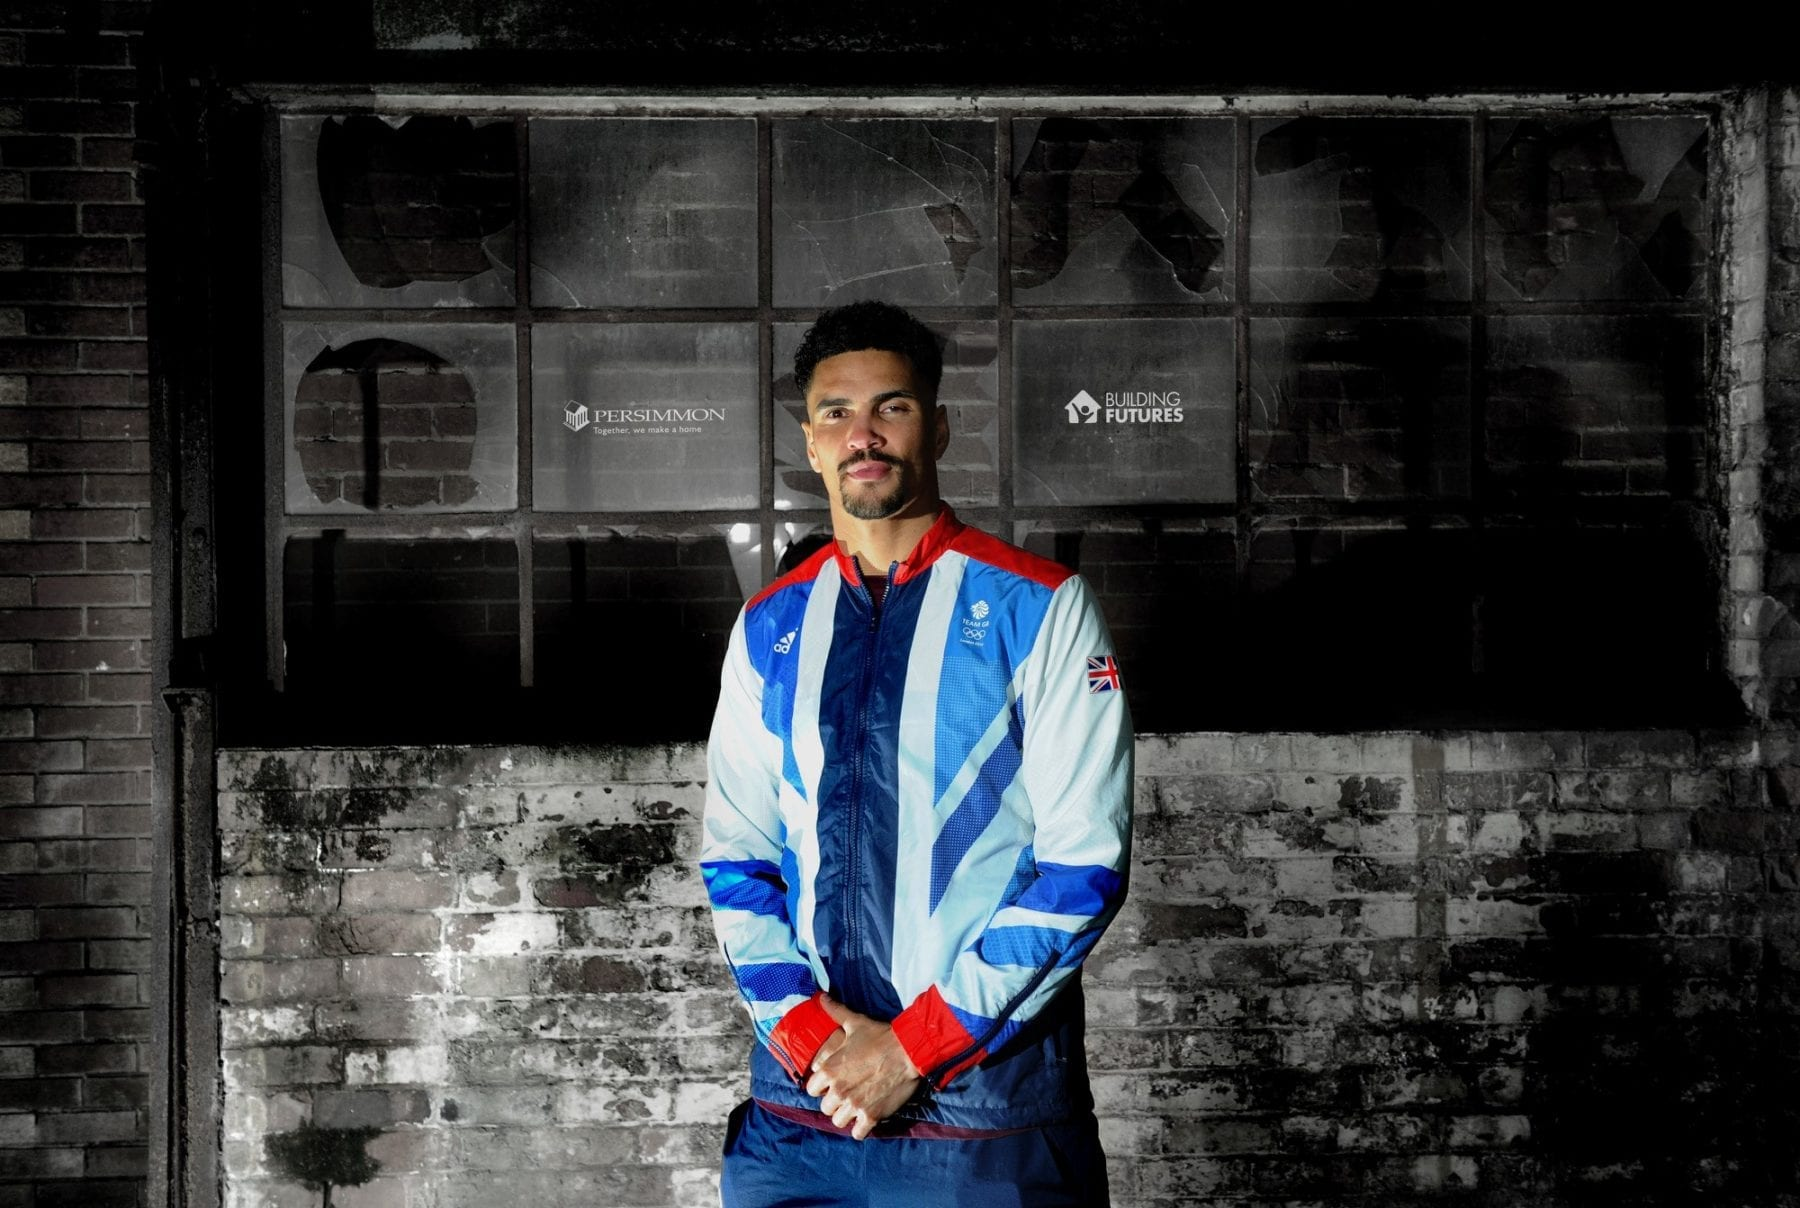 Anthony Ogogo stands against a wall with logos of Persimmon Homes and Building Futures